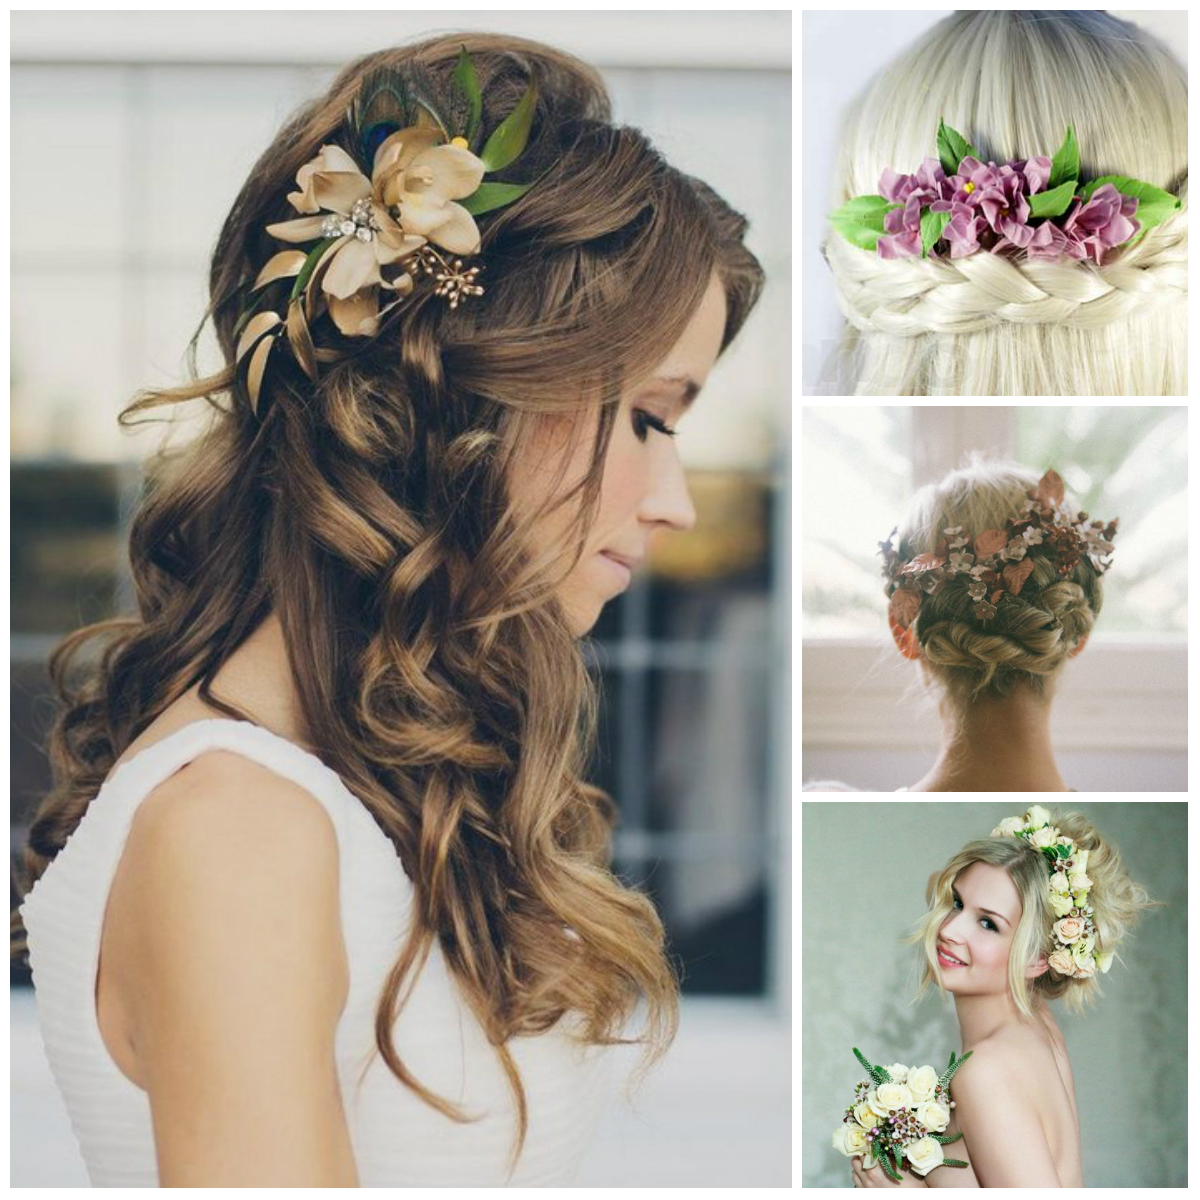 20 Wedding Hairstyles With Flowers: Wedding Hairstyles With Flowers